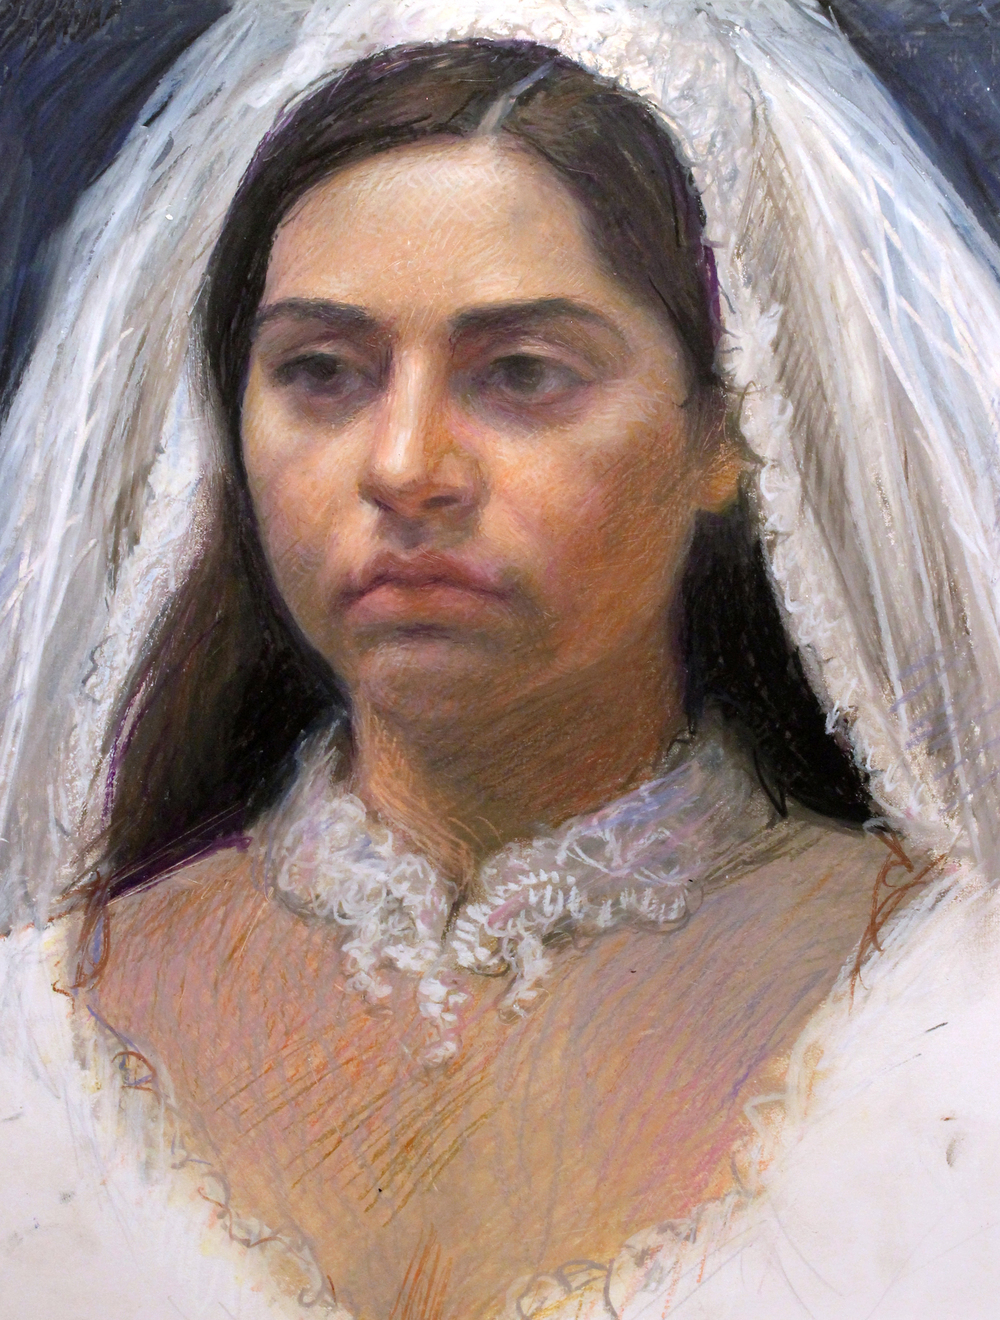 Miriam as Bride